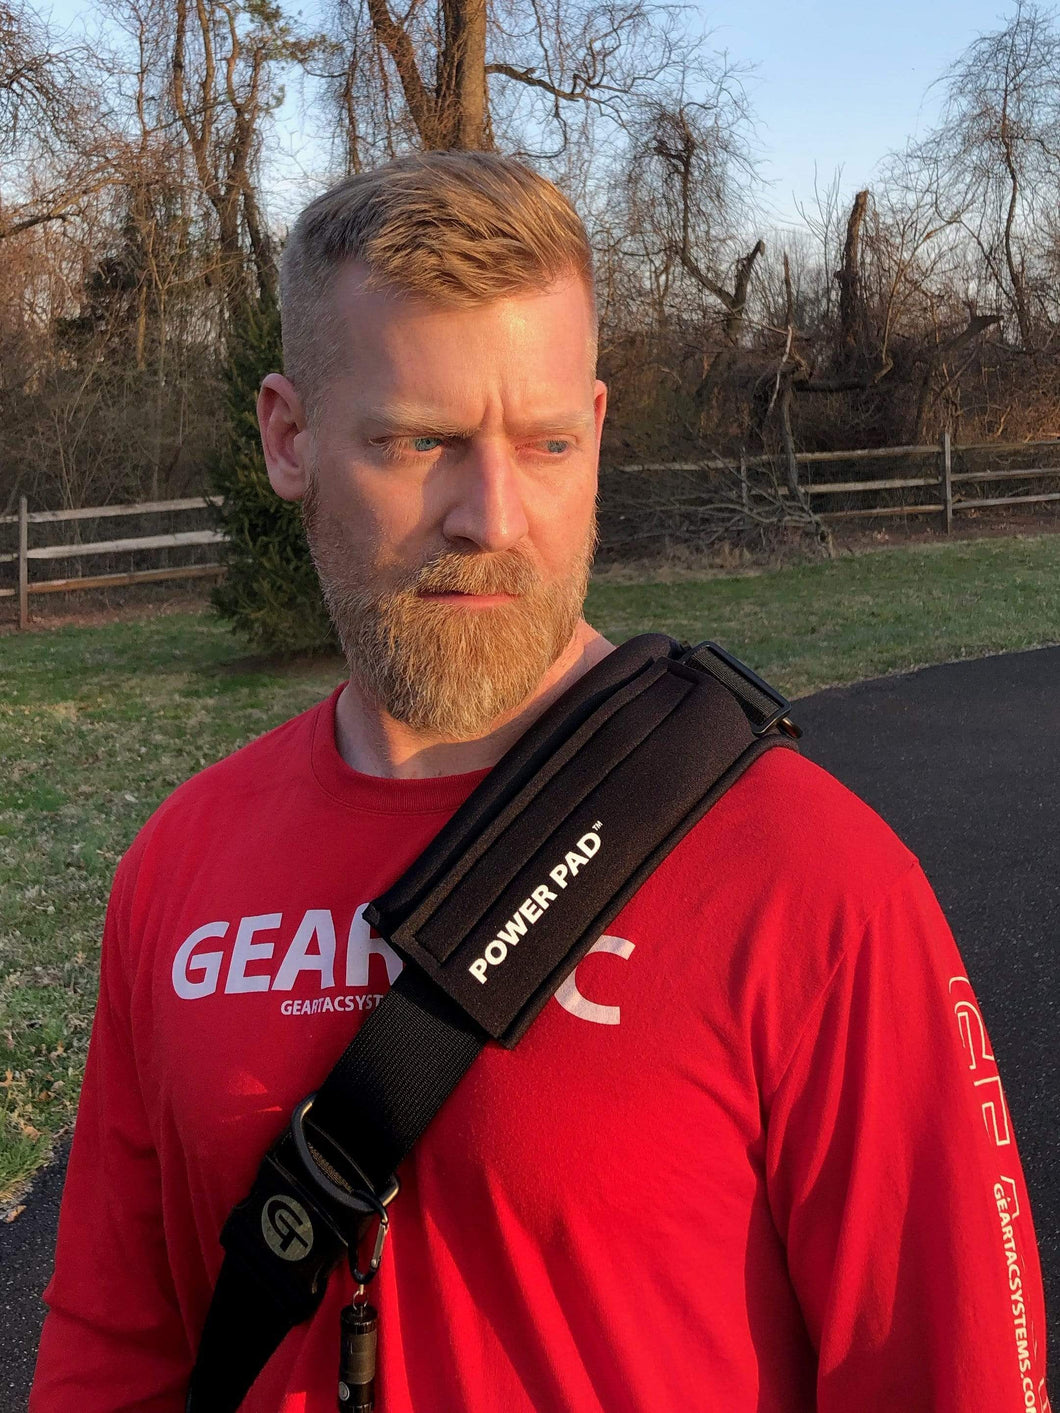 The Geartac Systems Power Pad adds even more comfort to the hands free dog leash